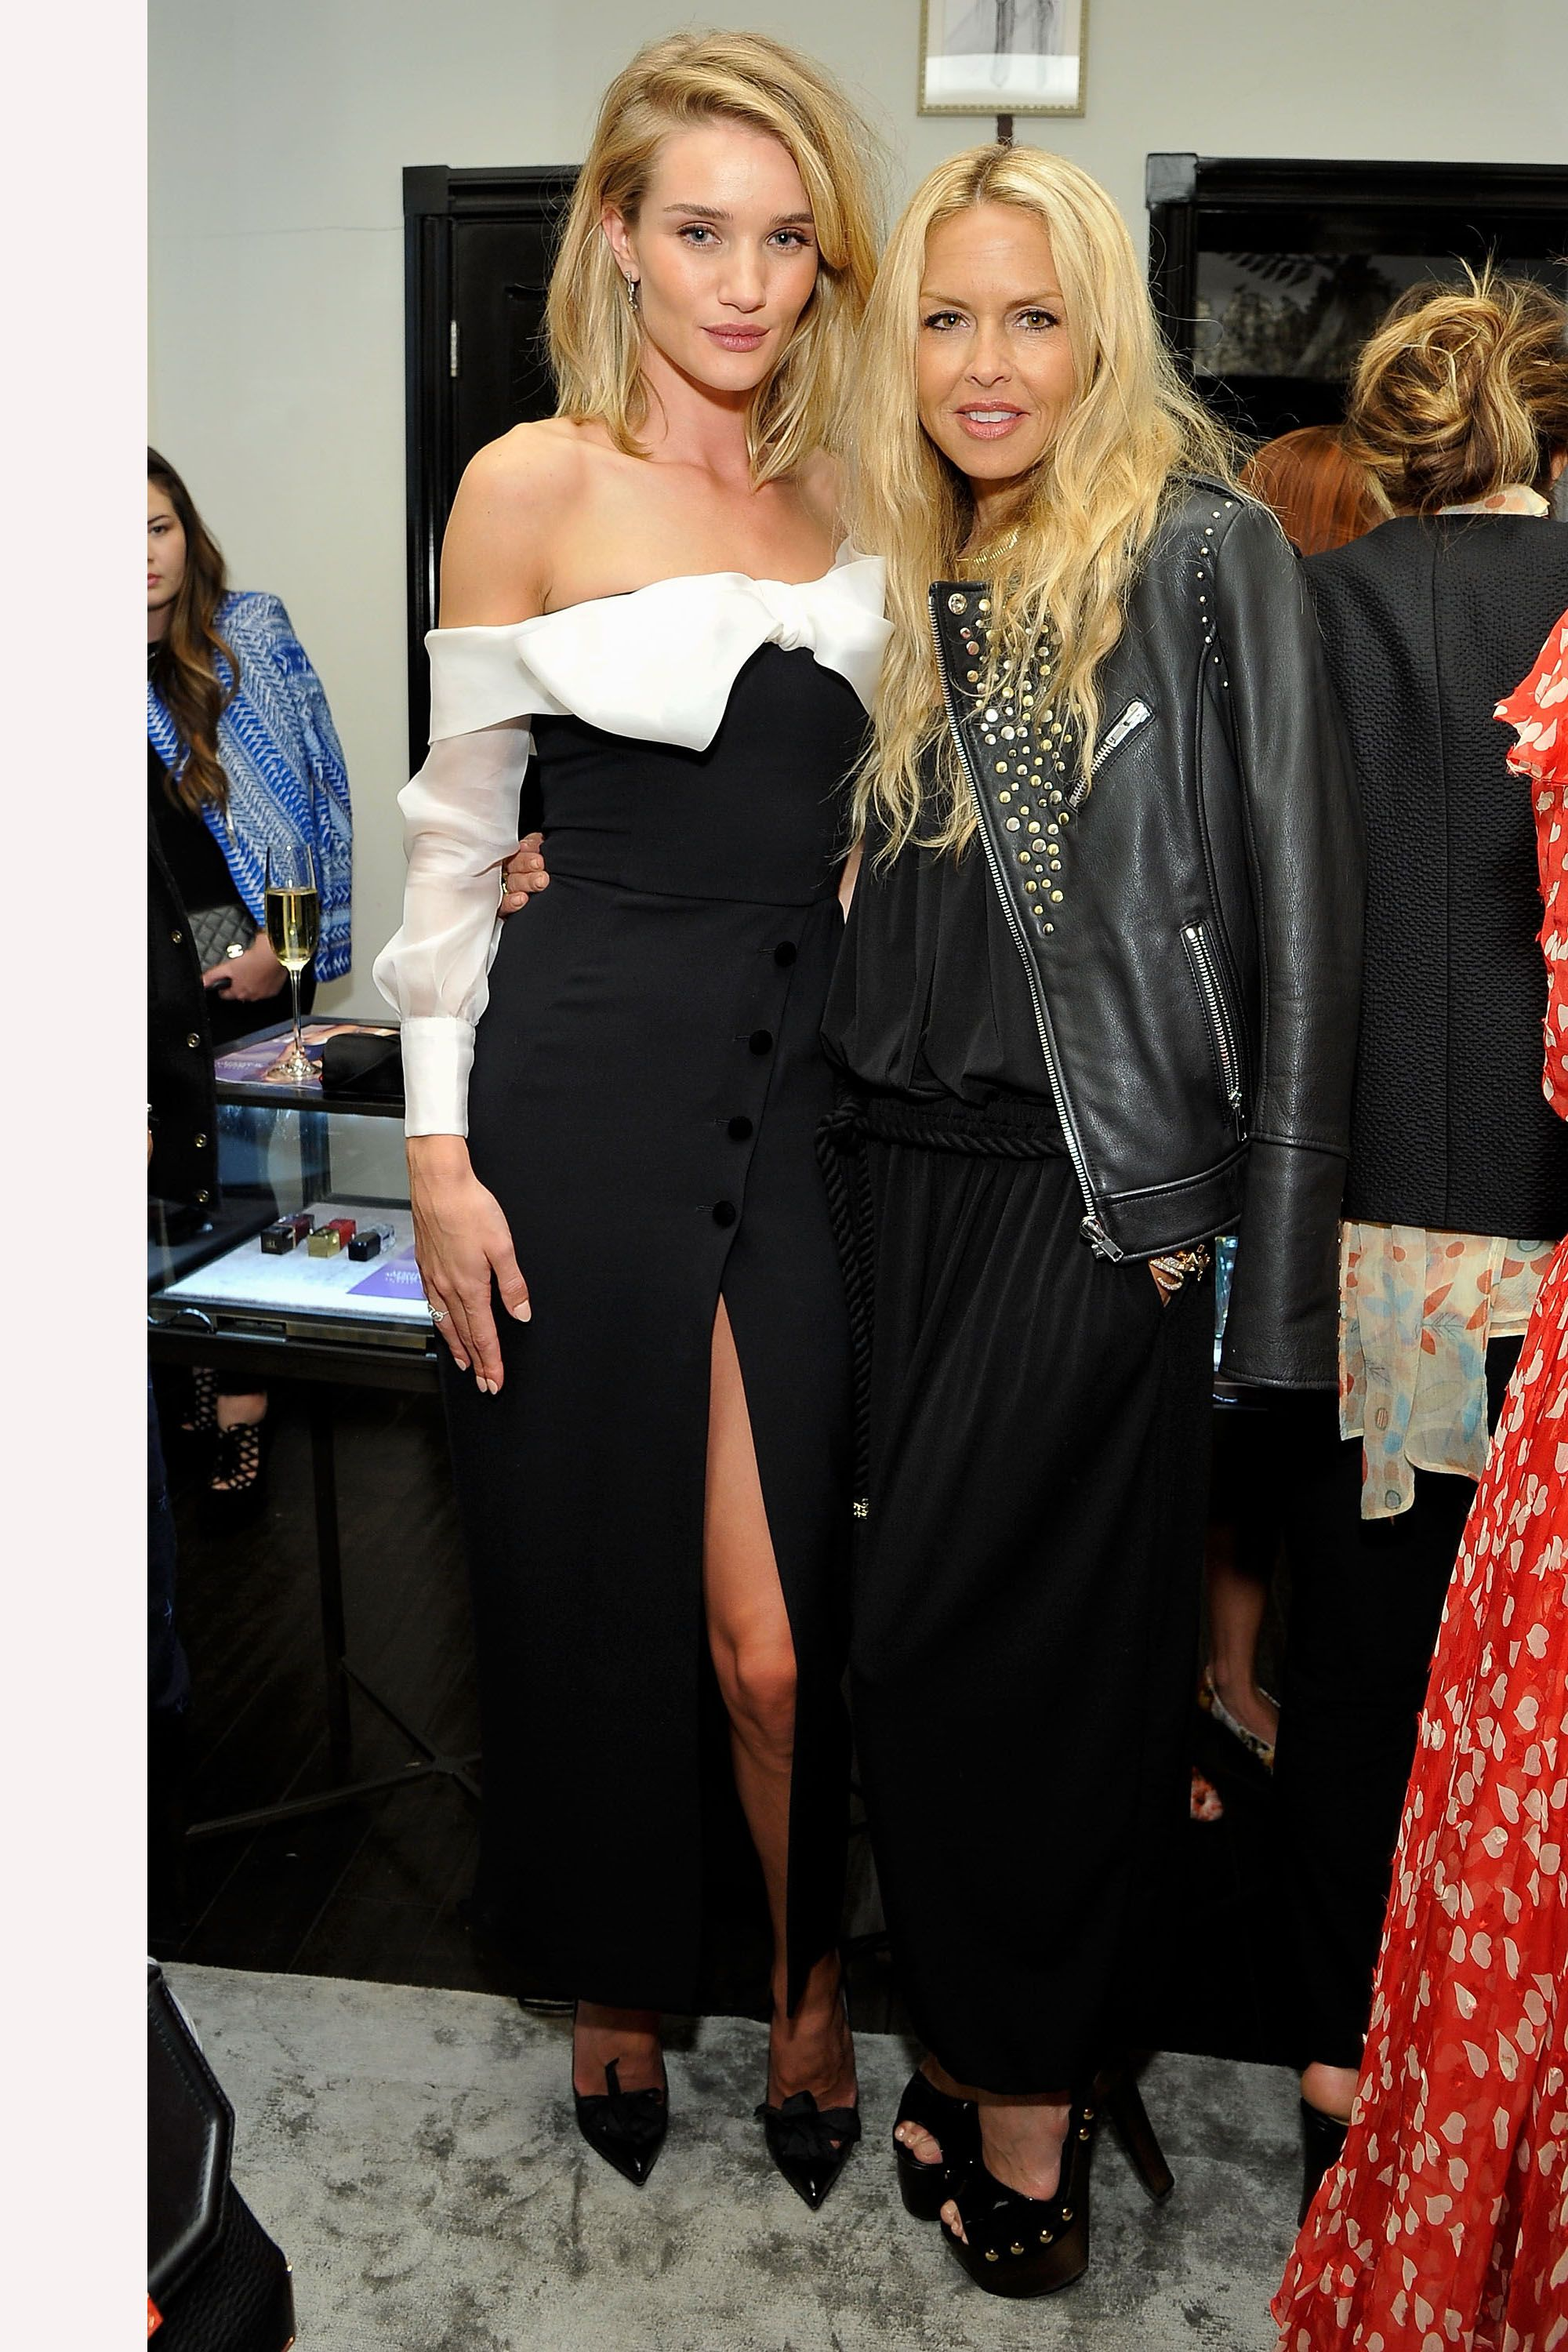 LOS ANGELES, CA - APRIL 21:  (L-R) Model/actress Rosie Huntington-Whiteley and Rachel Zoe attend harper by Harper's BAZAAR at Violet Grey with Rosie Huntington-Whiteley on April 21, 2015 in Los Angeles, California.  (Photo by John Sciulli/Getty Images for Harper's BAZAAR)